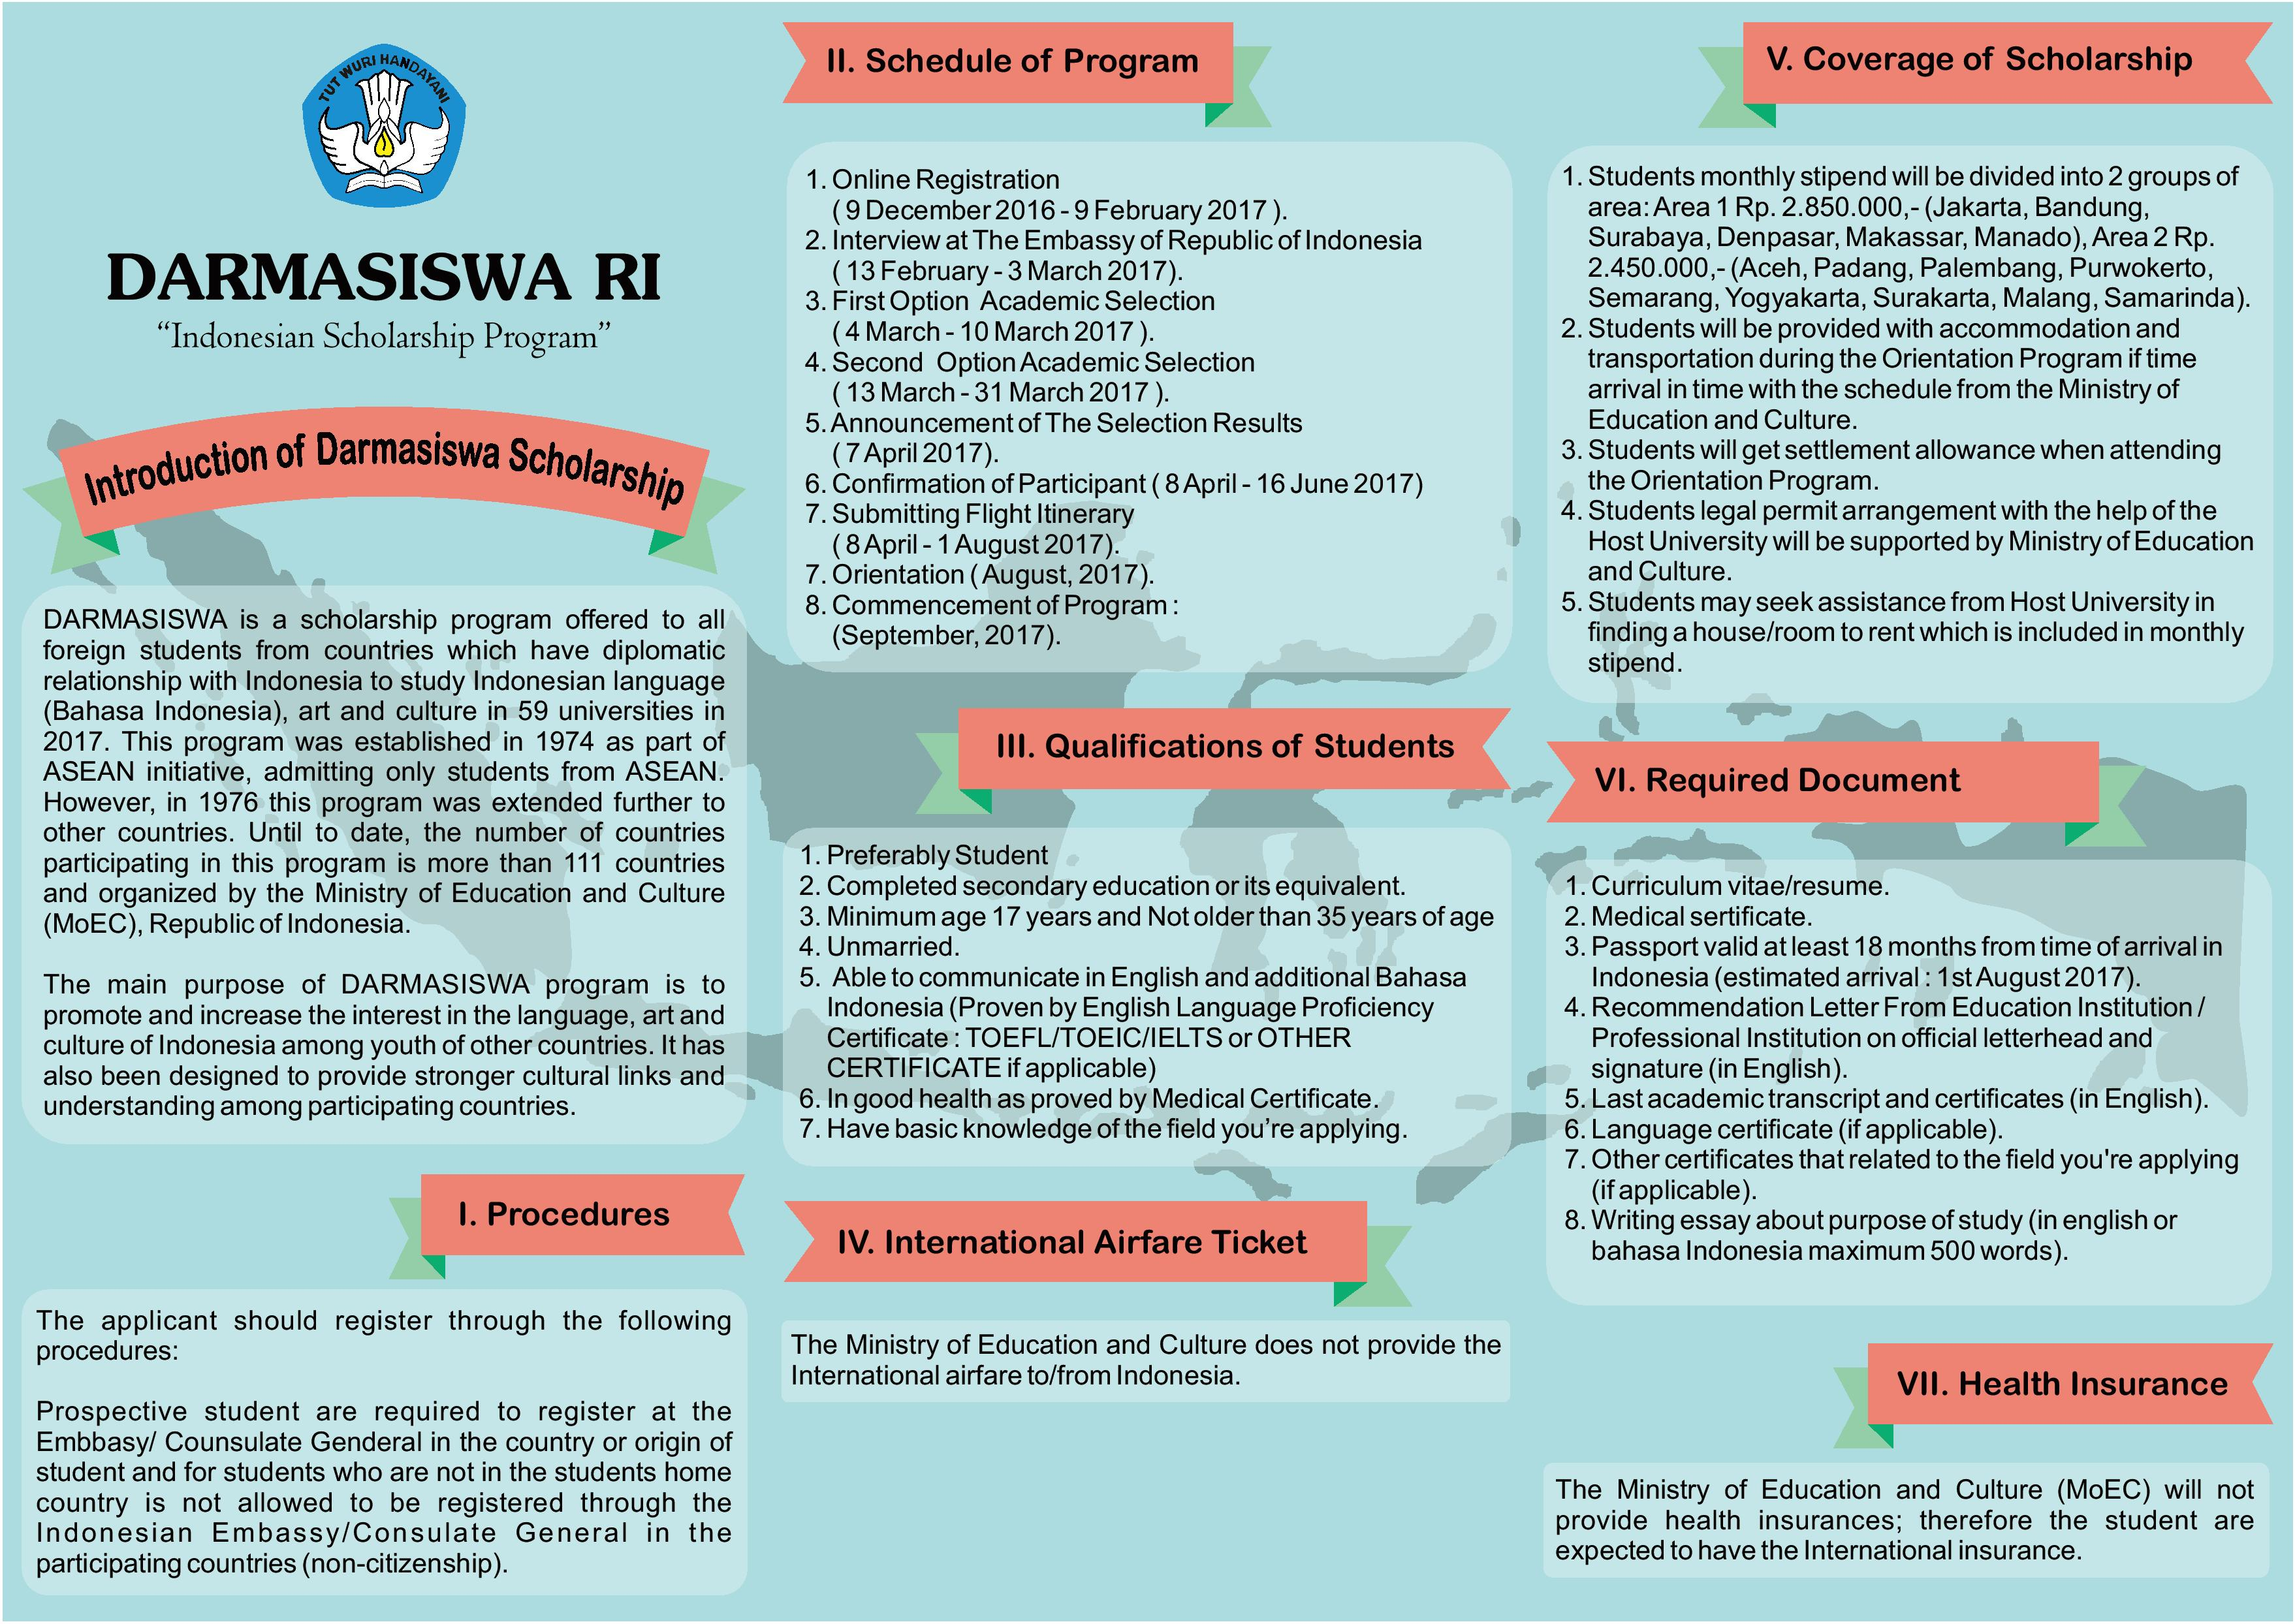 leaflet isi-page-001